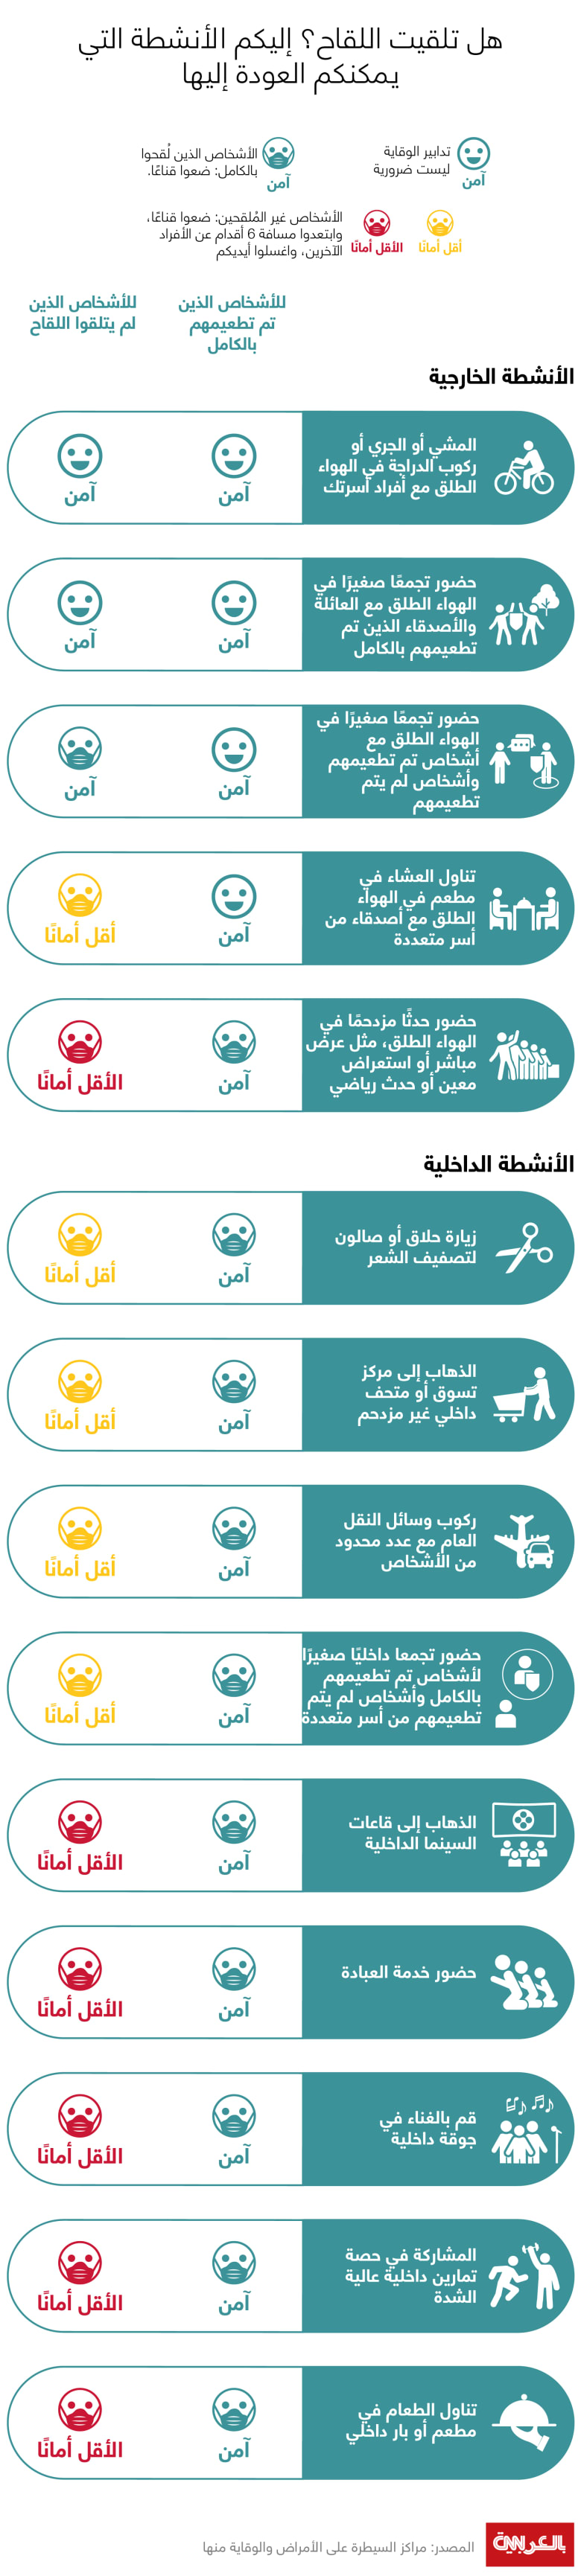 Activities-with-and-without-vaccination-2021